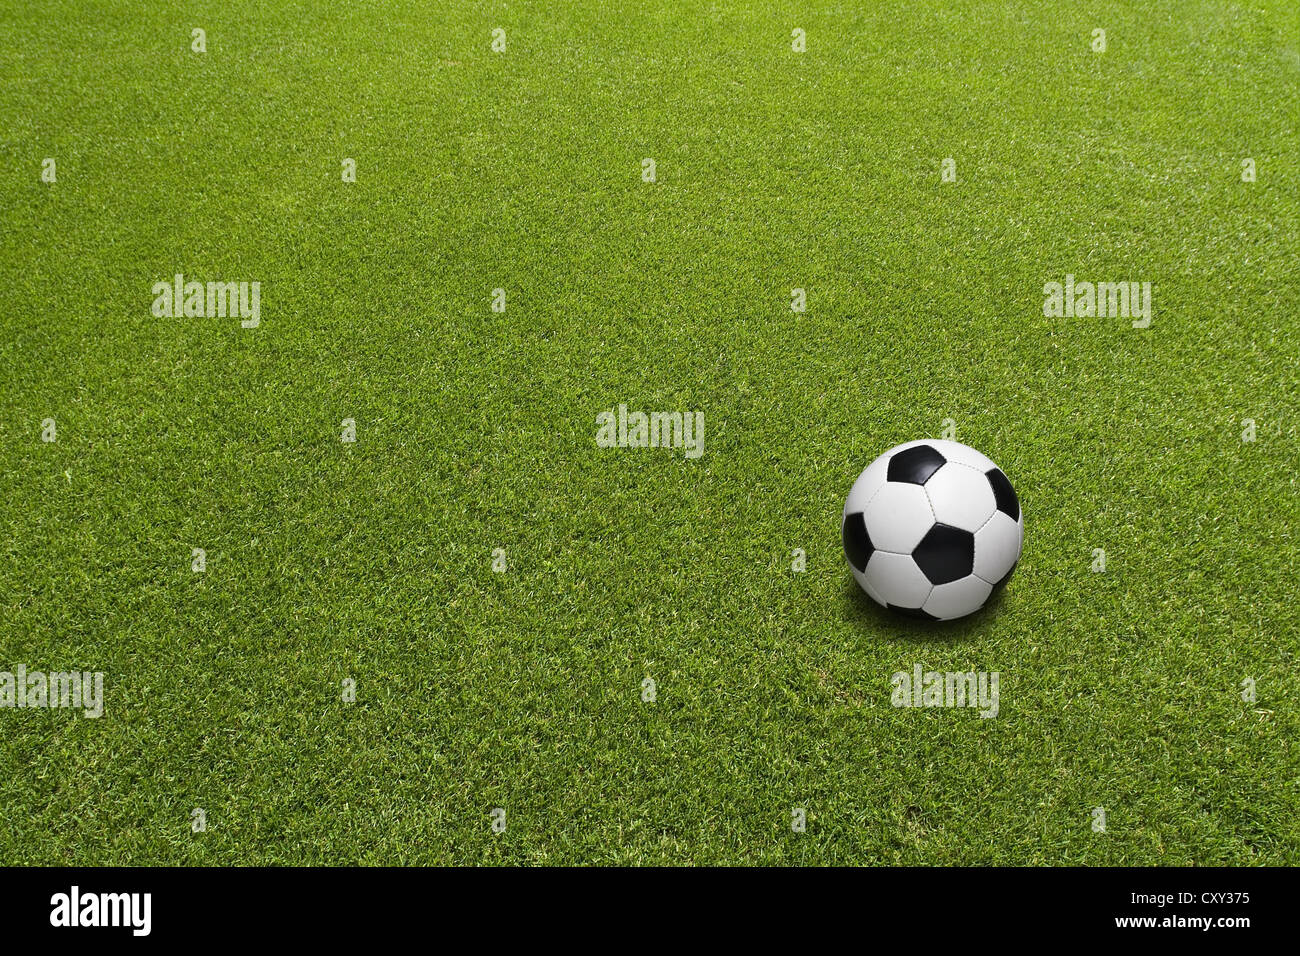 Lawn with a football - Stock Image